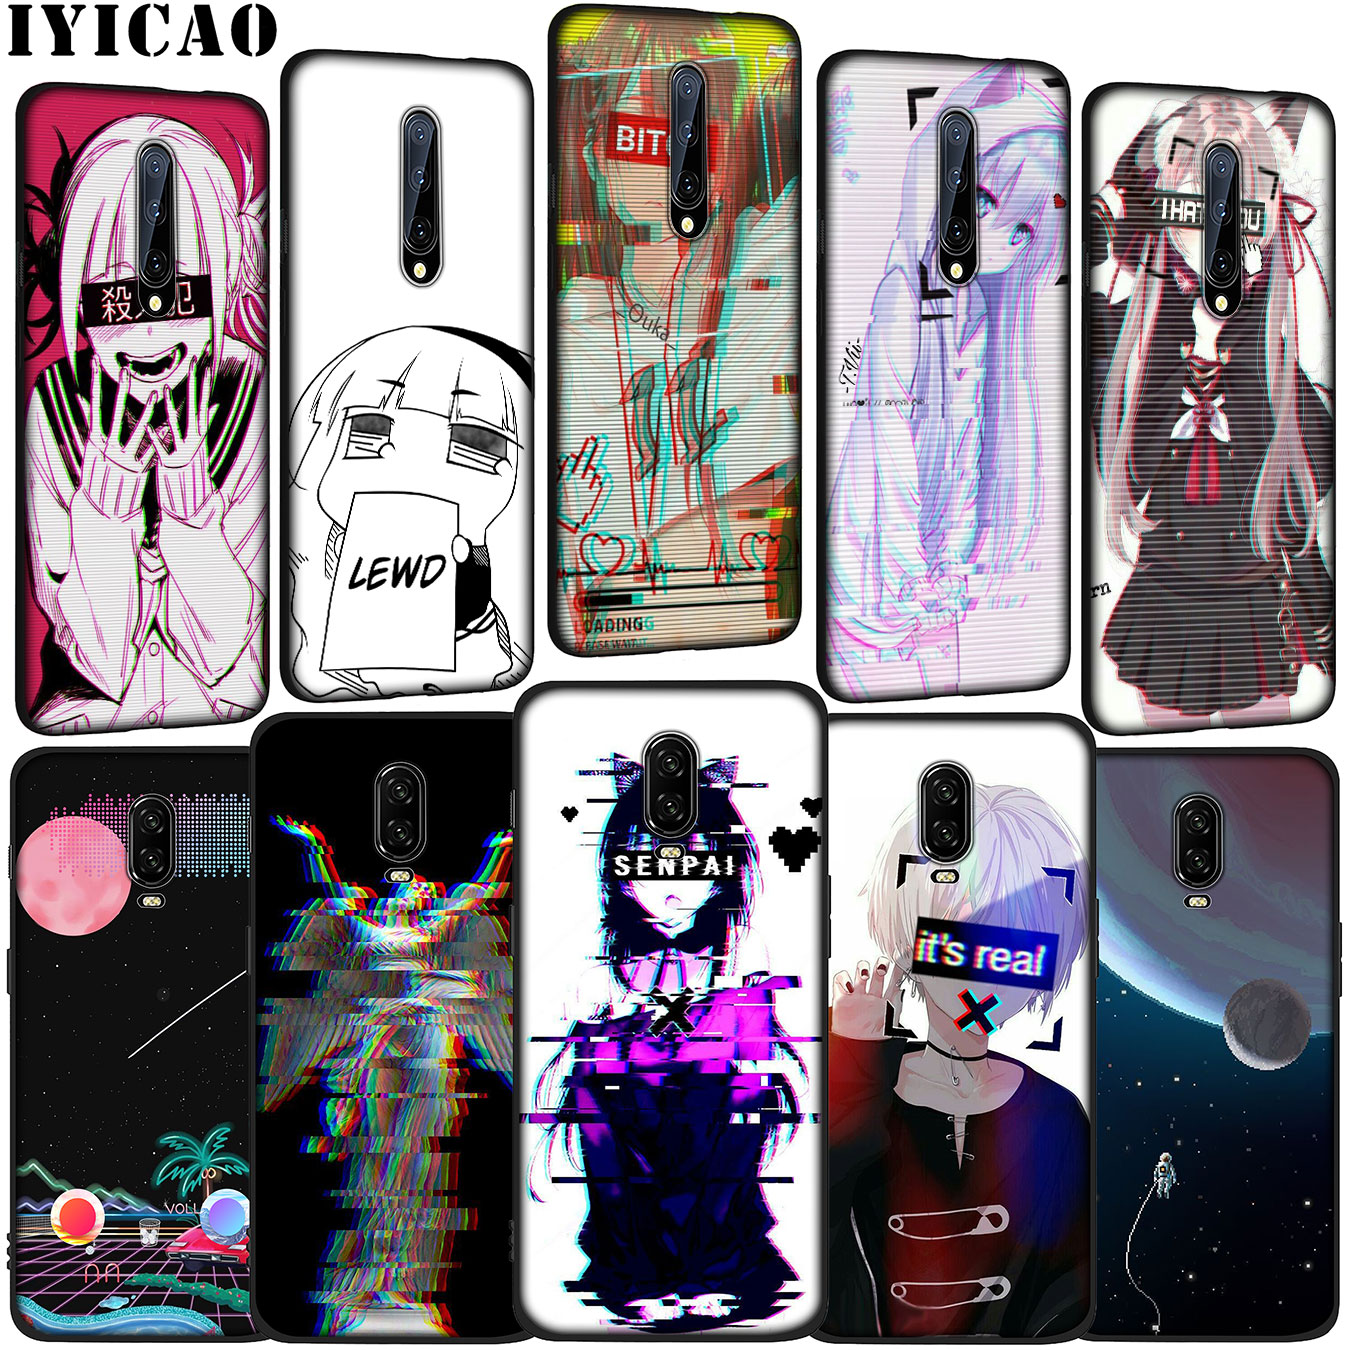 IYICAO Vaporwave Space <font><b>Anime</b></font> Soft Silicone TPU Black Phone <font><b>Case</b></font> for <font><b>OnePlus</b></font> 7 Pro 6T <font><b>6</b></font> 5T 5 One Plus 7Pro Cover image